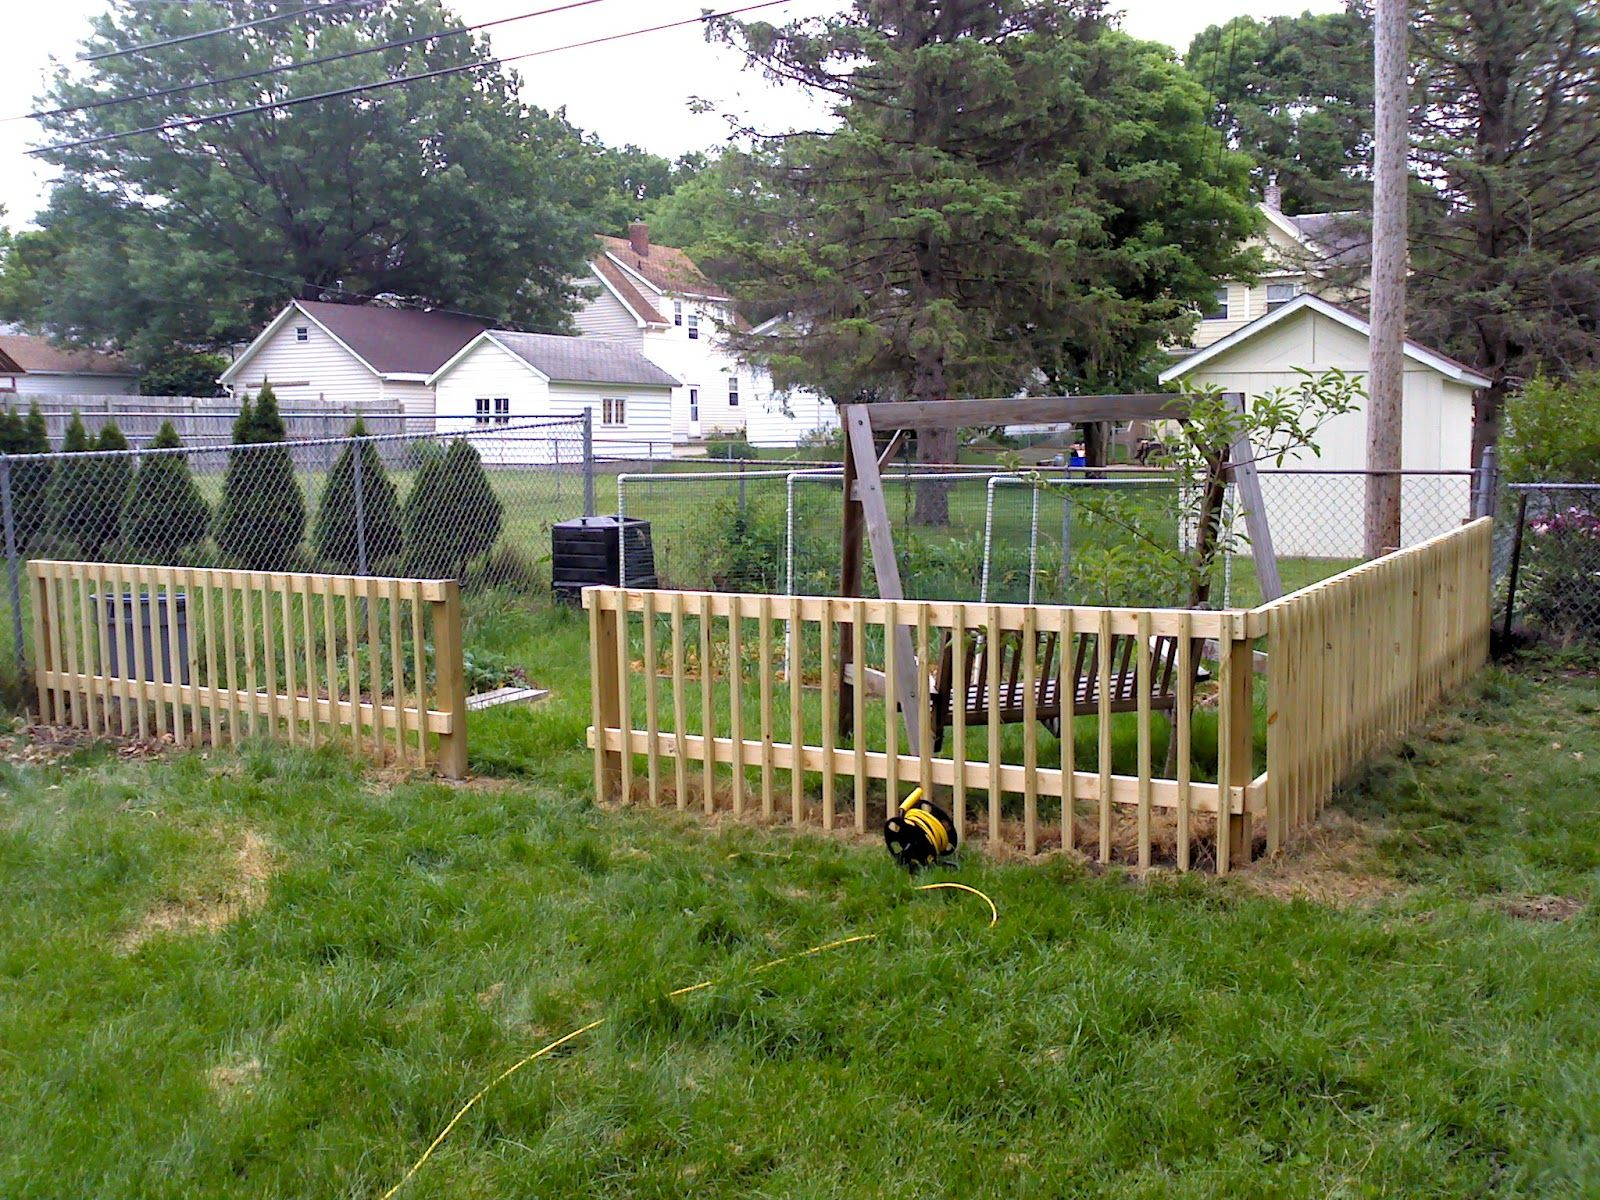 Perfect DIY Garden Fence Ideas, Cheap, Decoration, Easy, Privacy, Wood, Gate, Wire,  Small, How To Build, Plans, Sticks, Decor And Picket